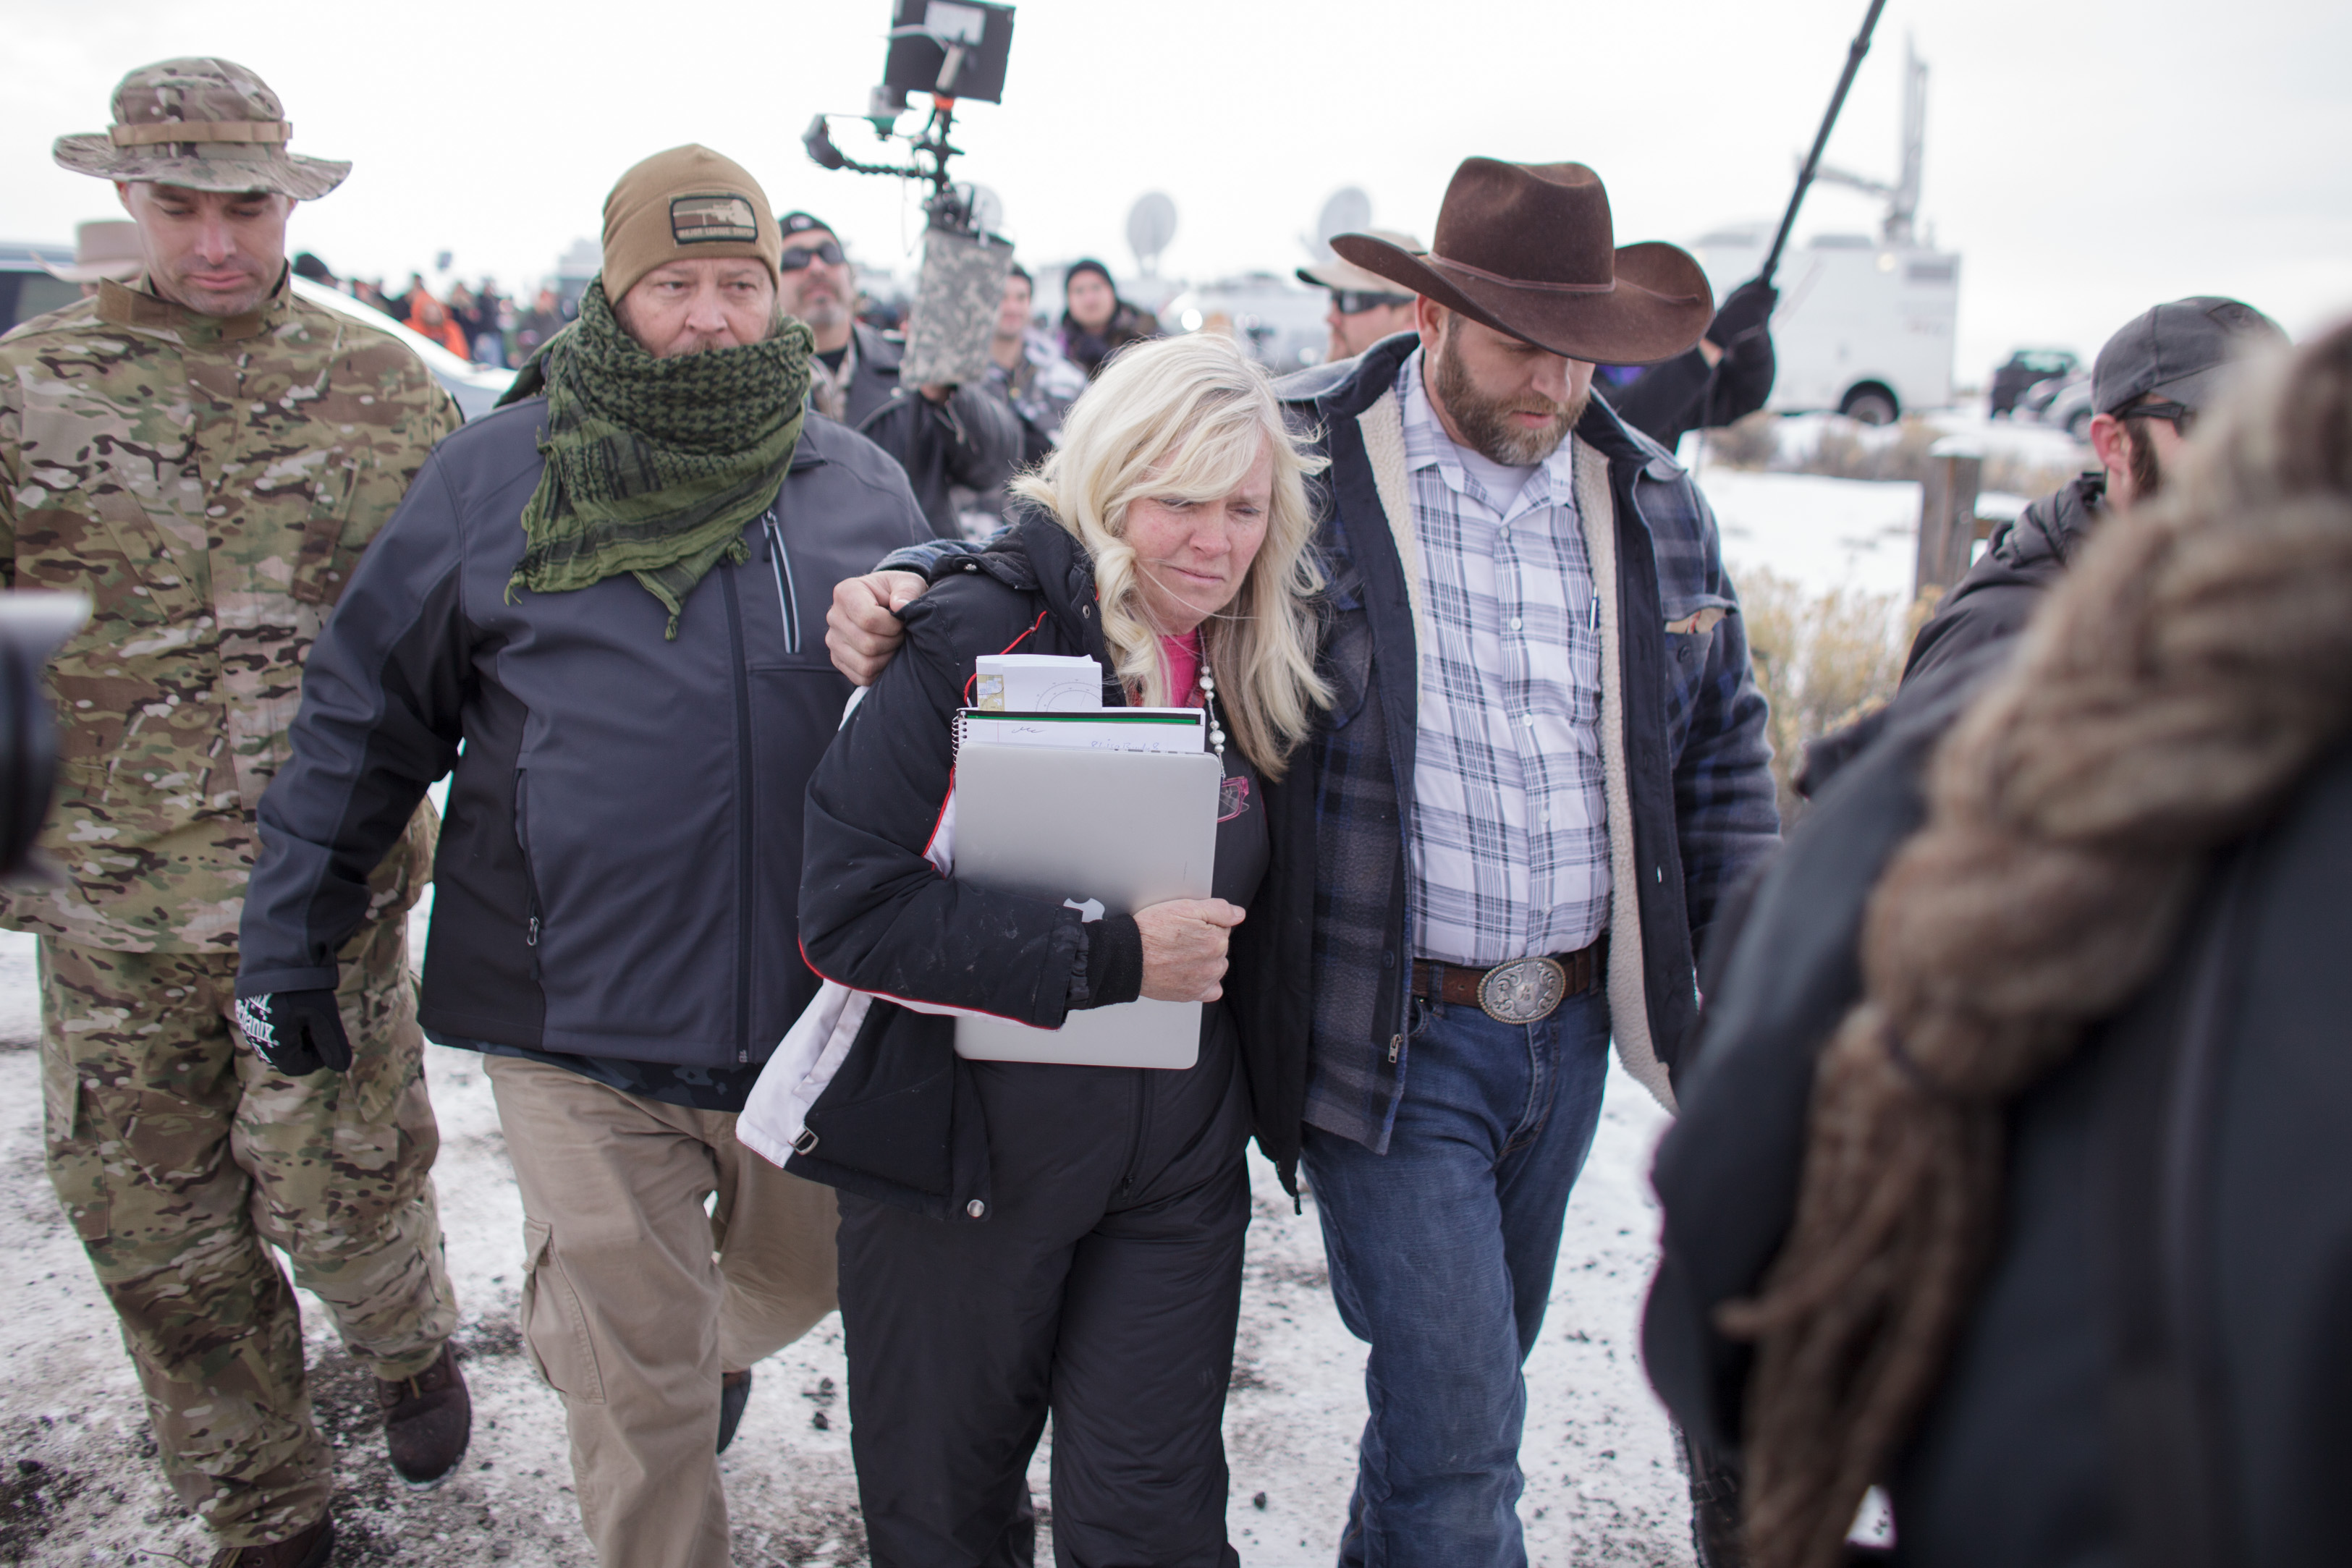 Ammon Bundy and Shawna Cox after speaking to the media as other members look on at the Malheur National Wildlife Refuge near Burns, Oregon on Jan. 4, 2016.